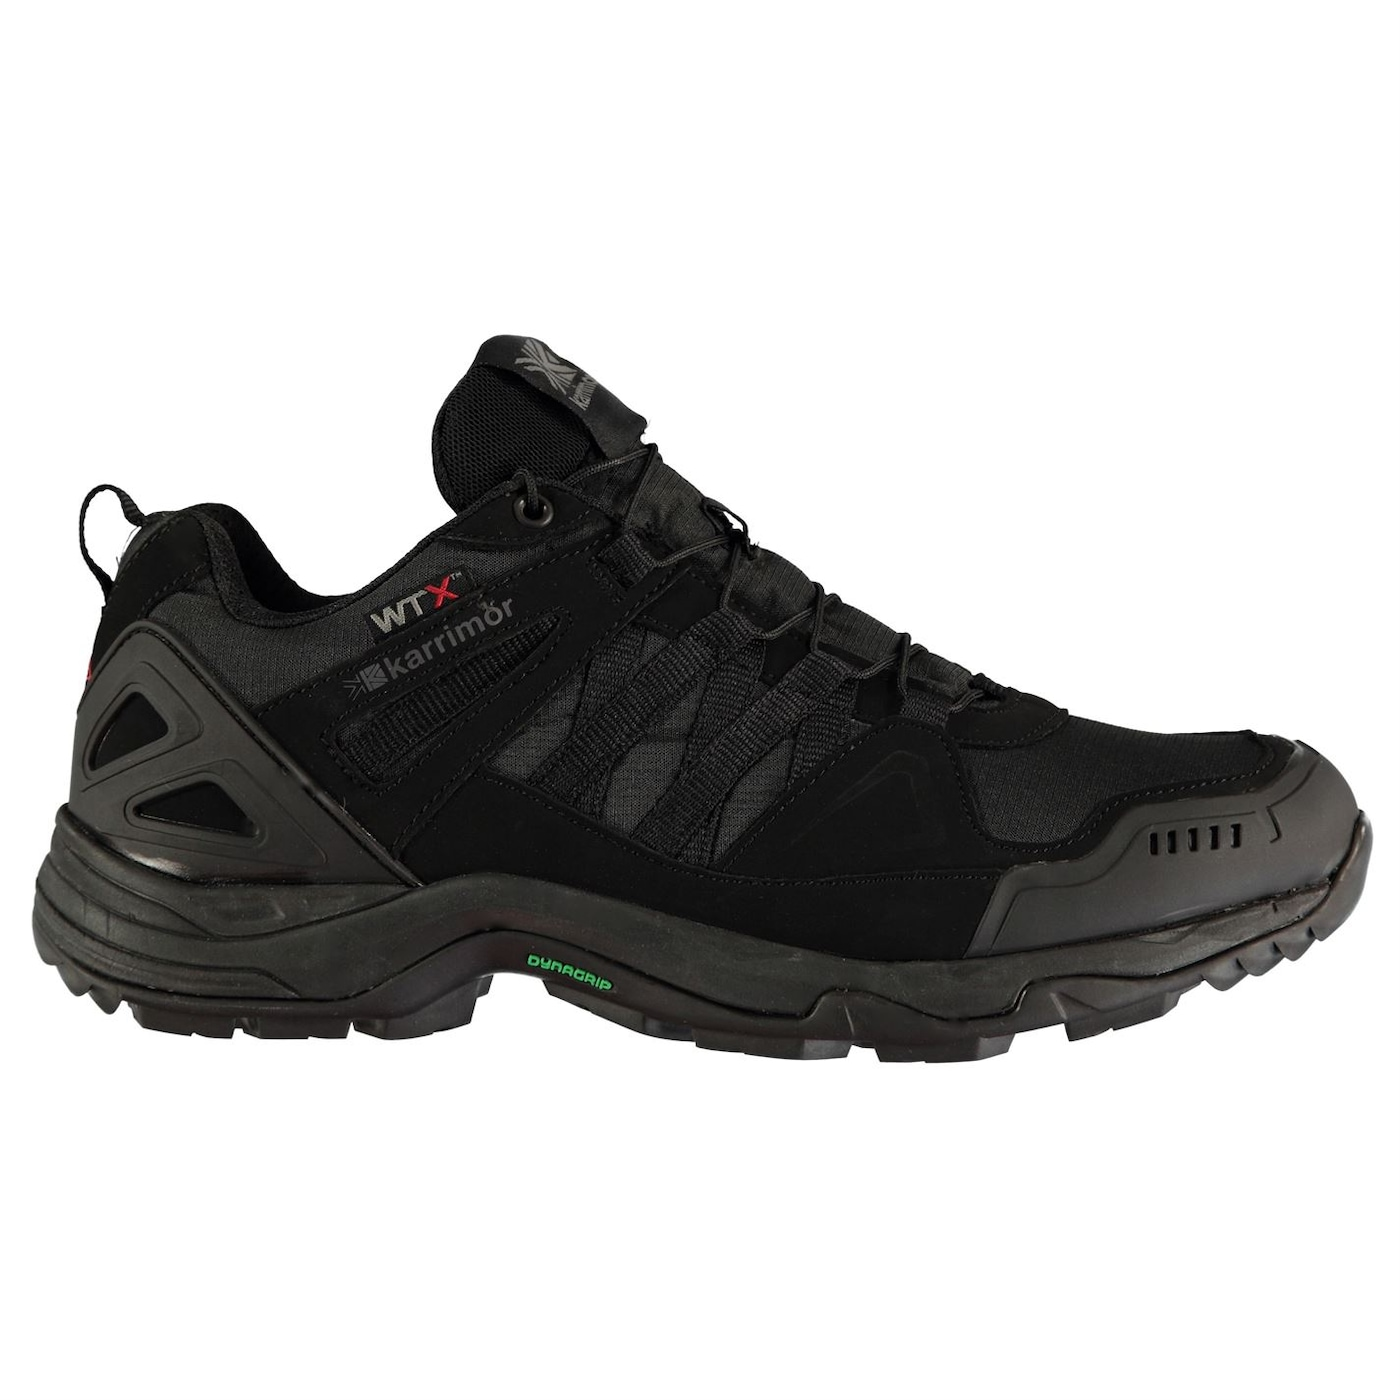 Karrimor Surge WTX Mens Walking Shoes